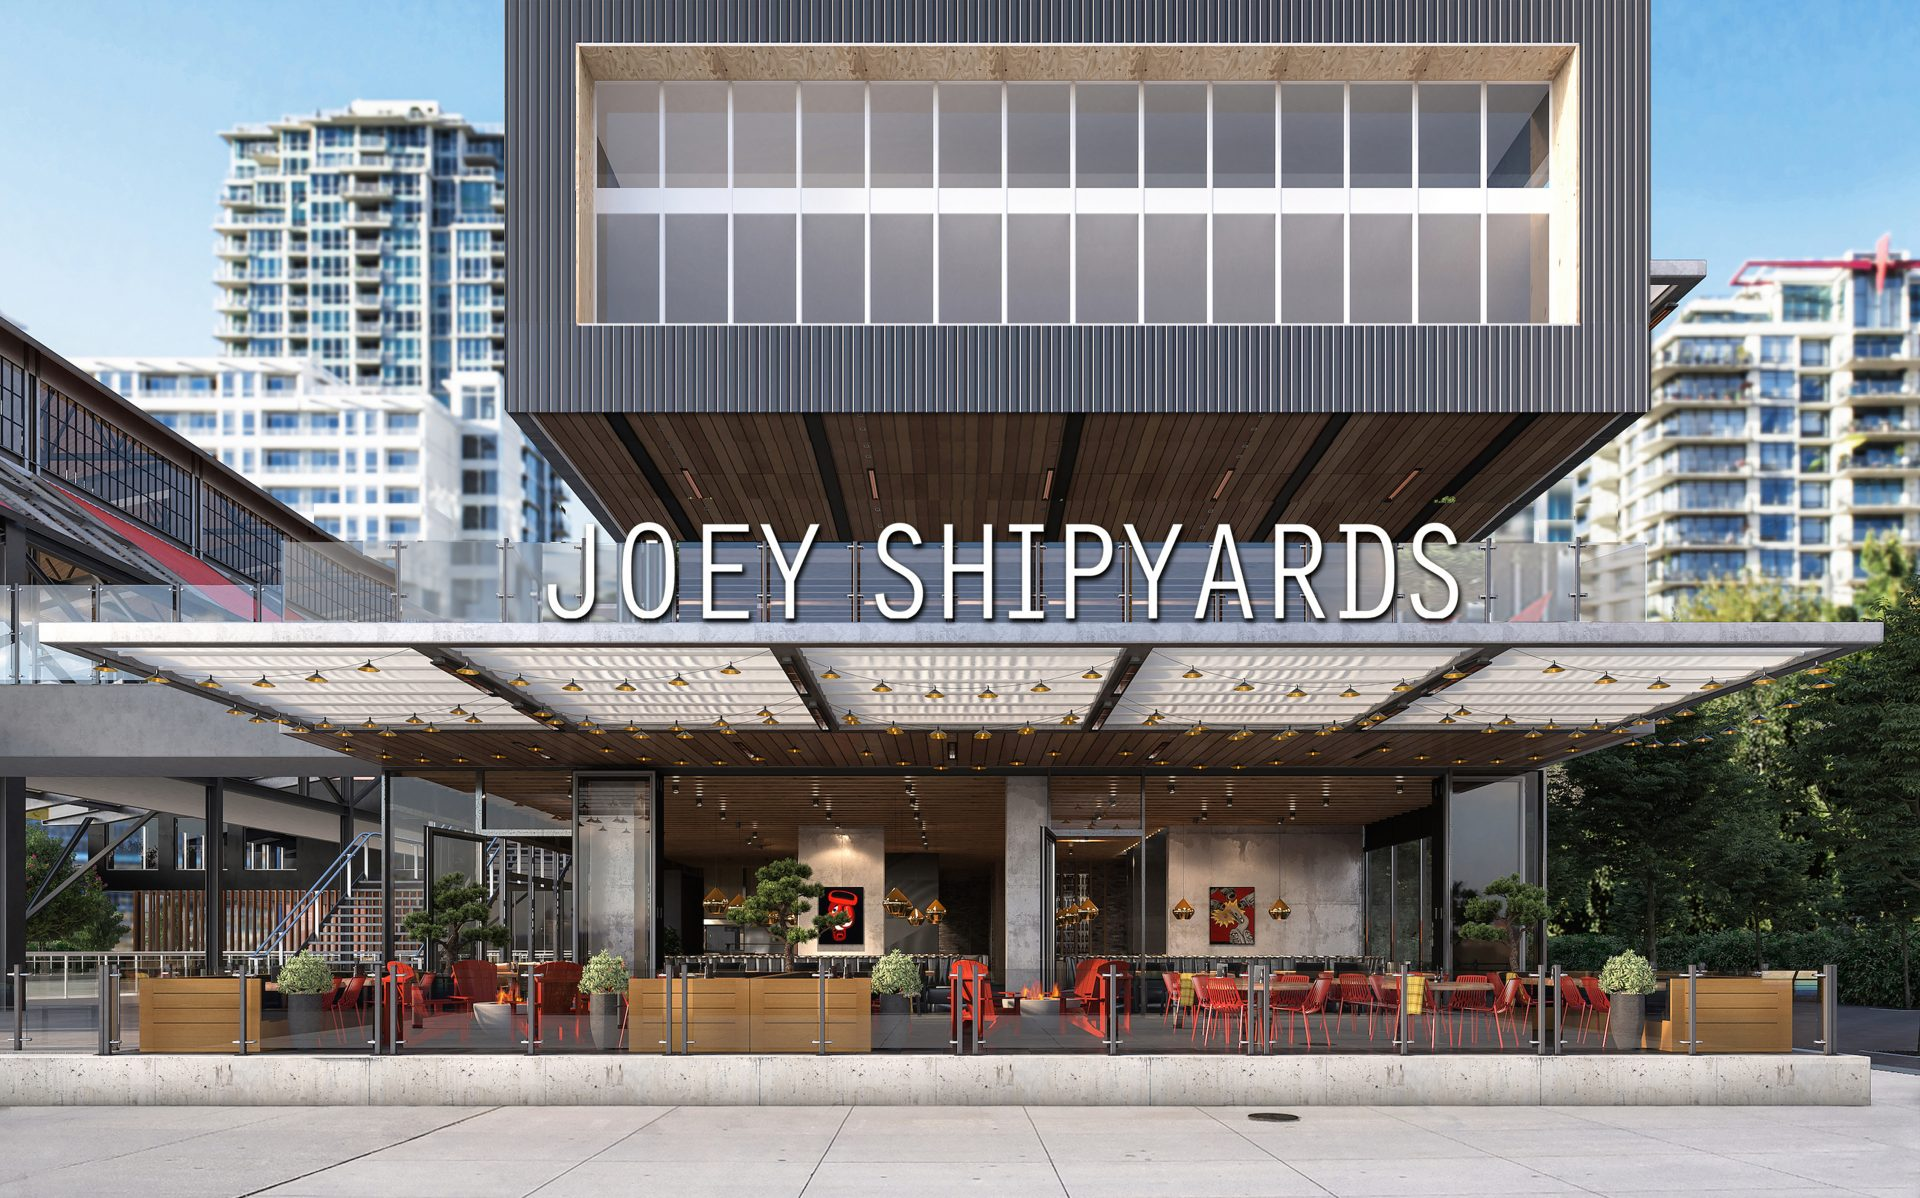 JOEY Shipyards